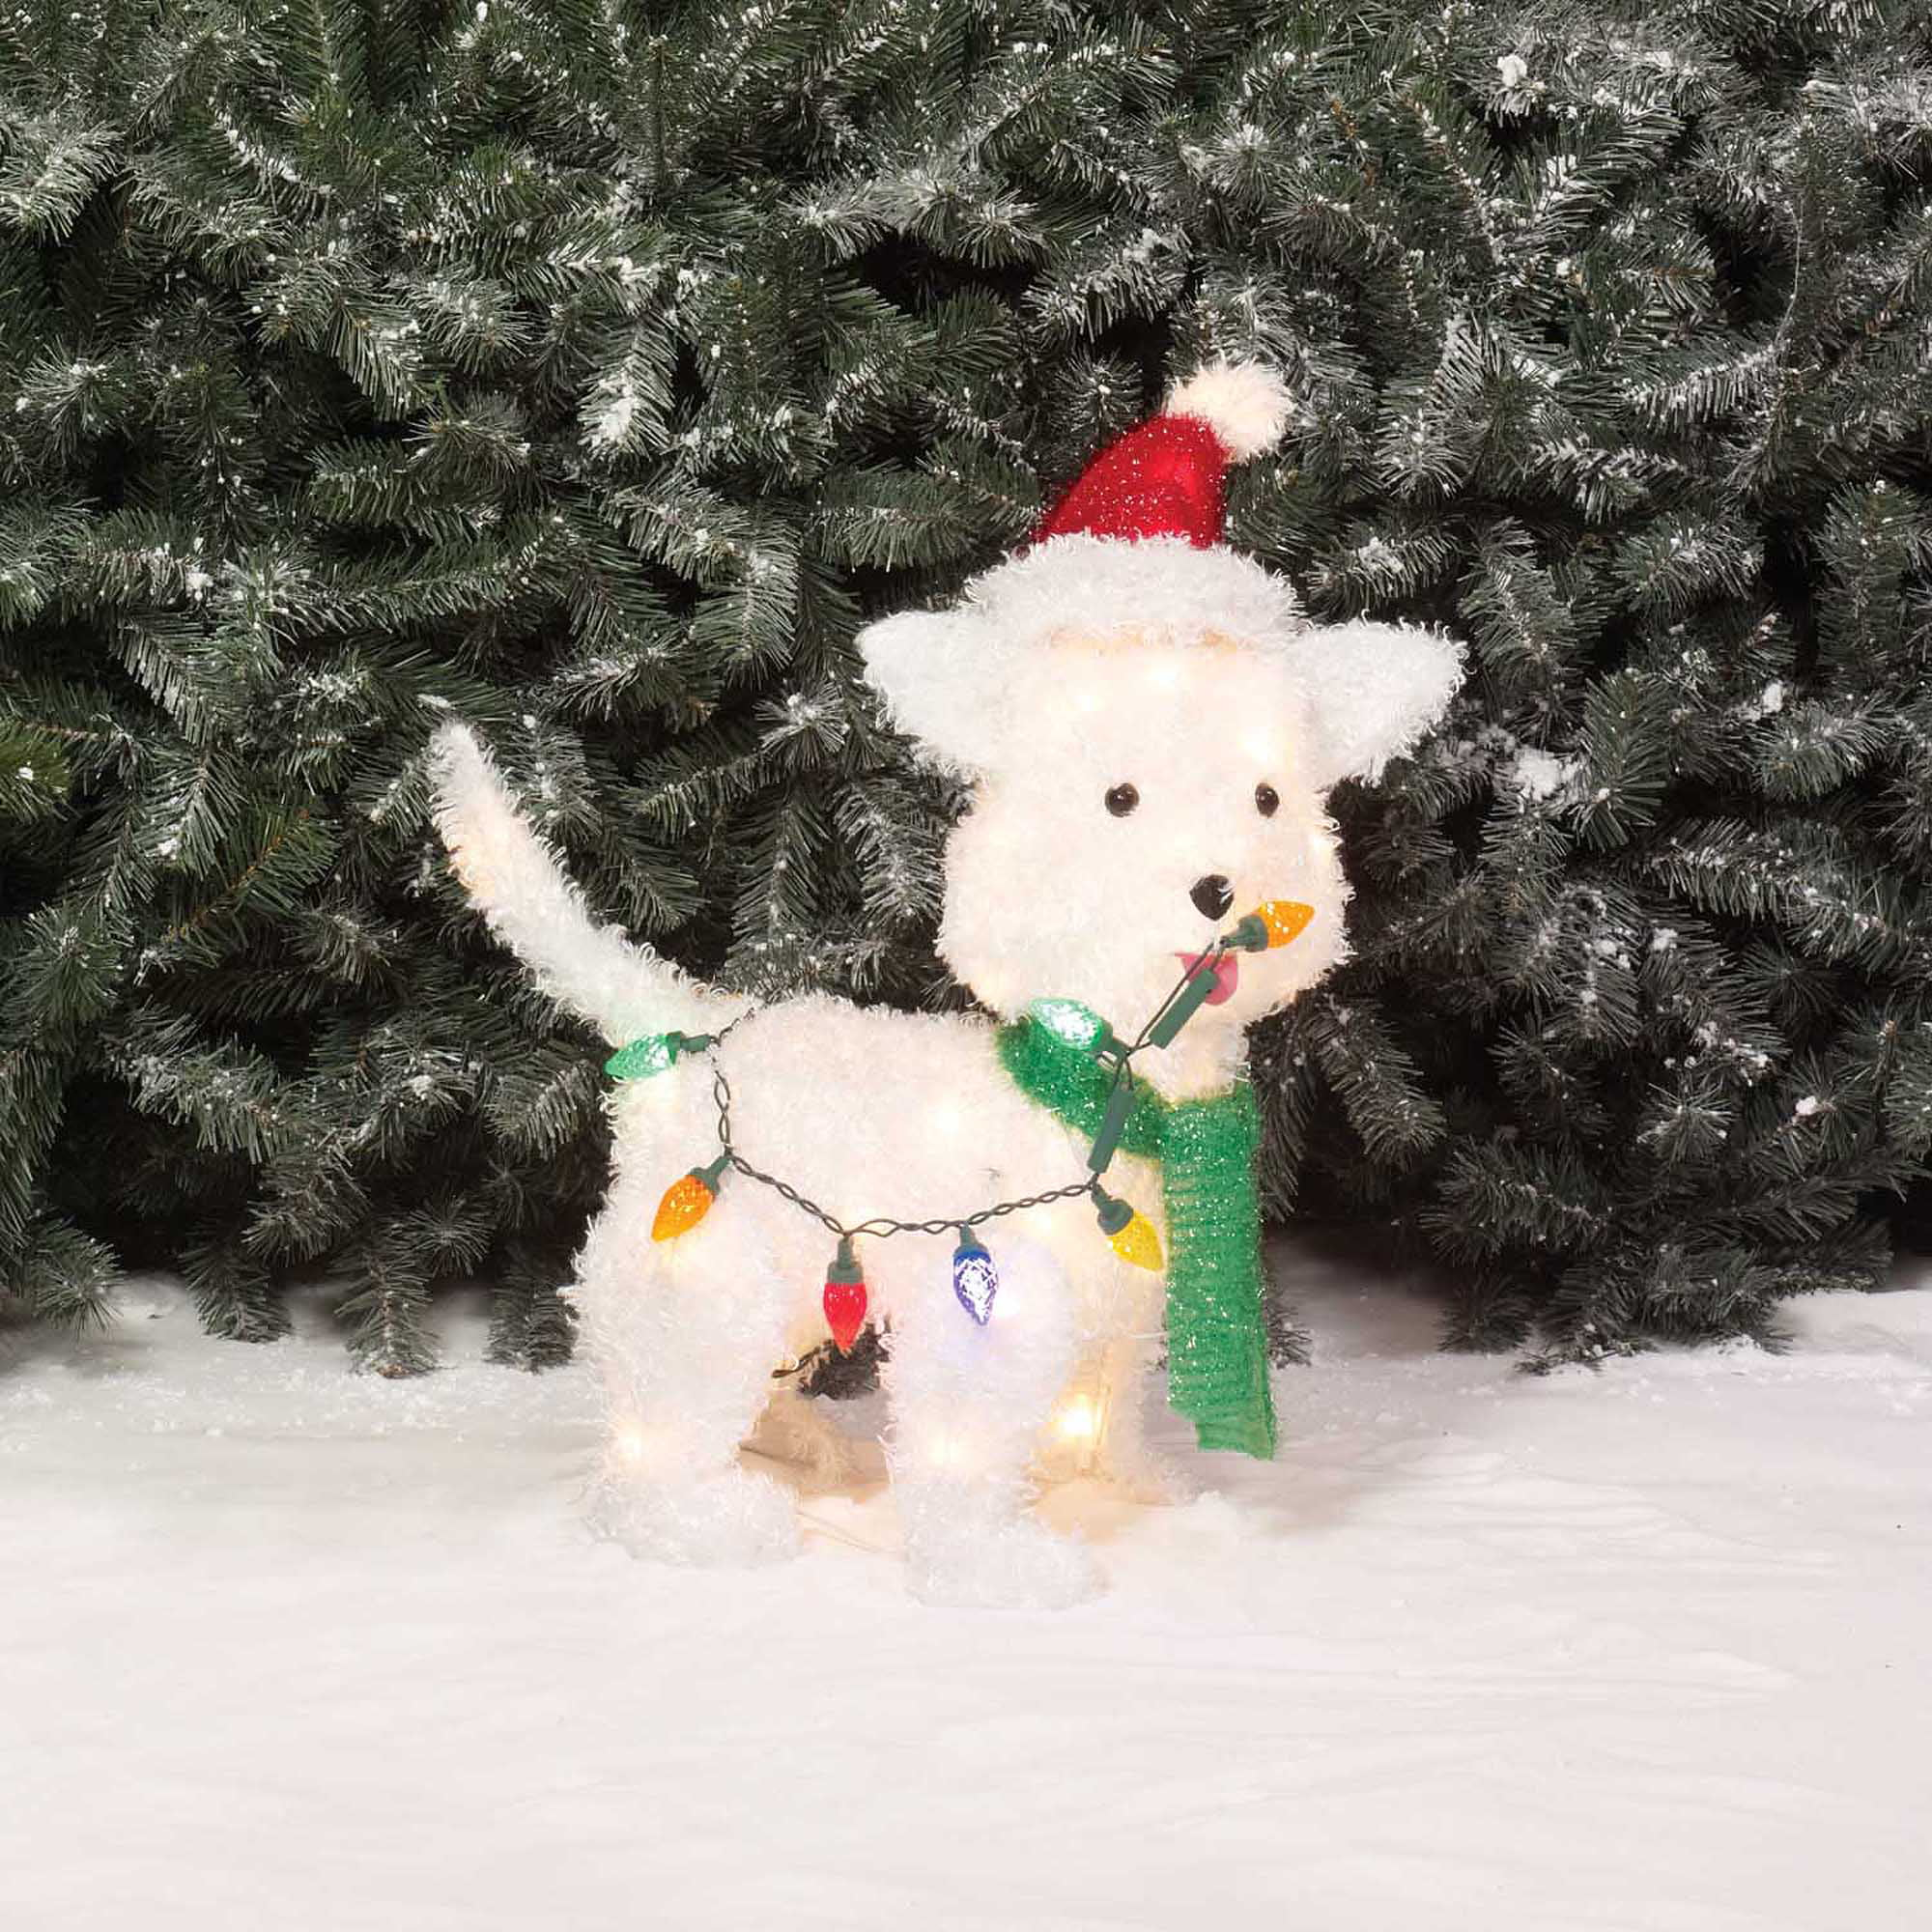 holiday time christmas decor 24 fluffy dog light sculpture walmartcom - Walmart Christmas Decorations Indoor